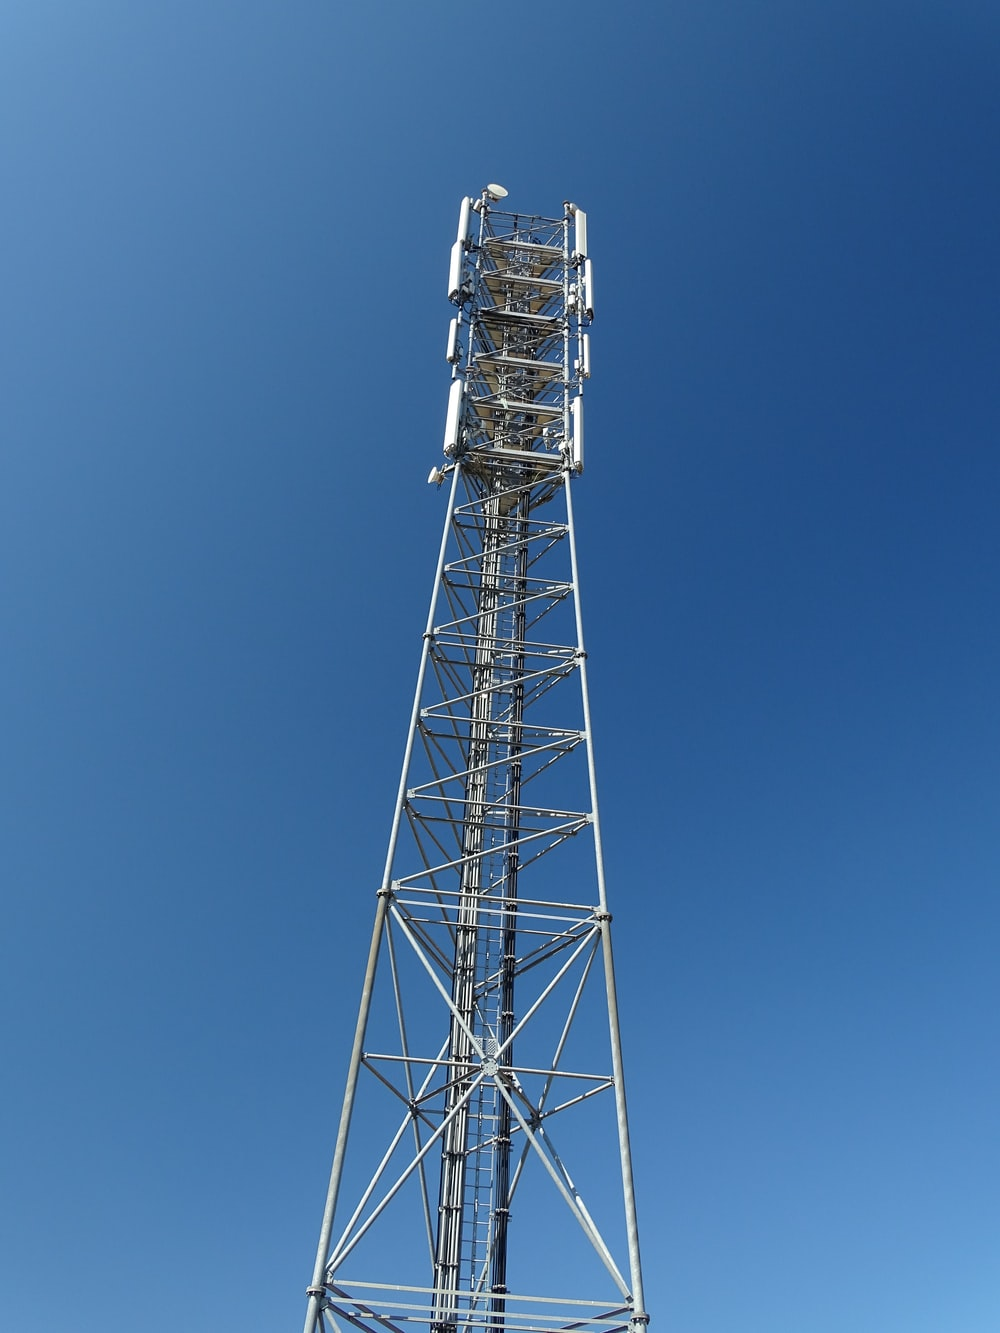 gray steel tower under blue sky during daytime